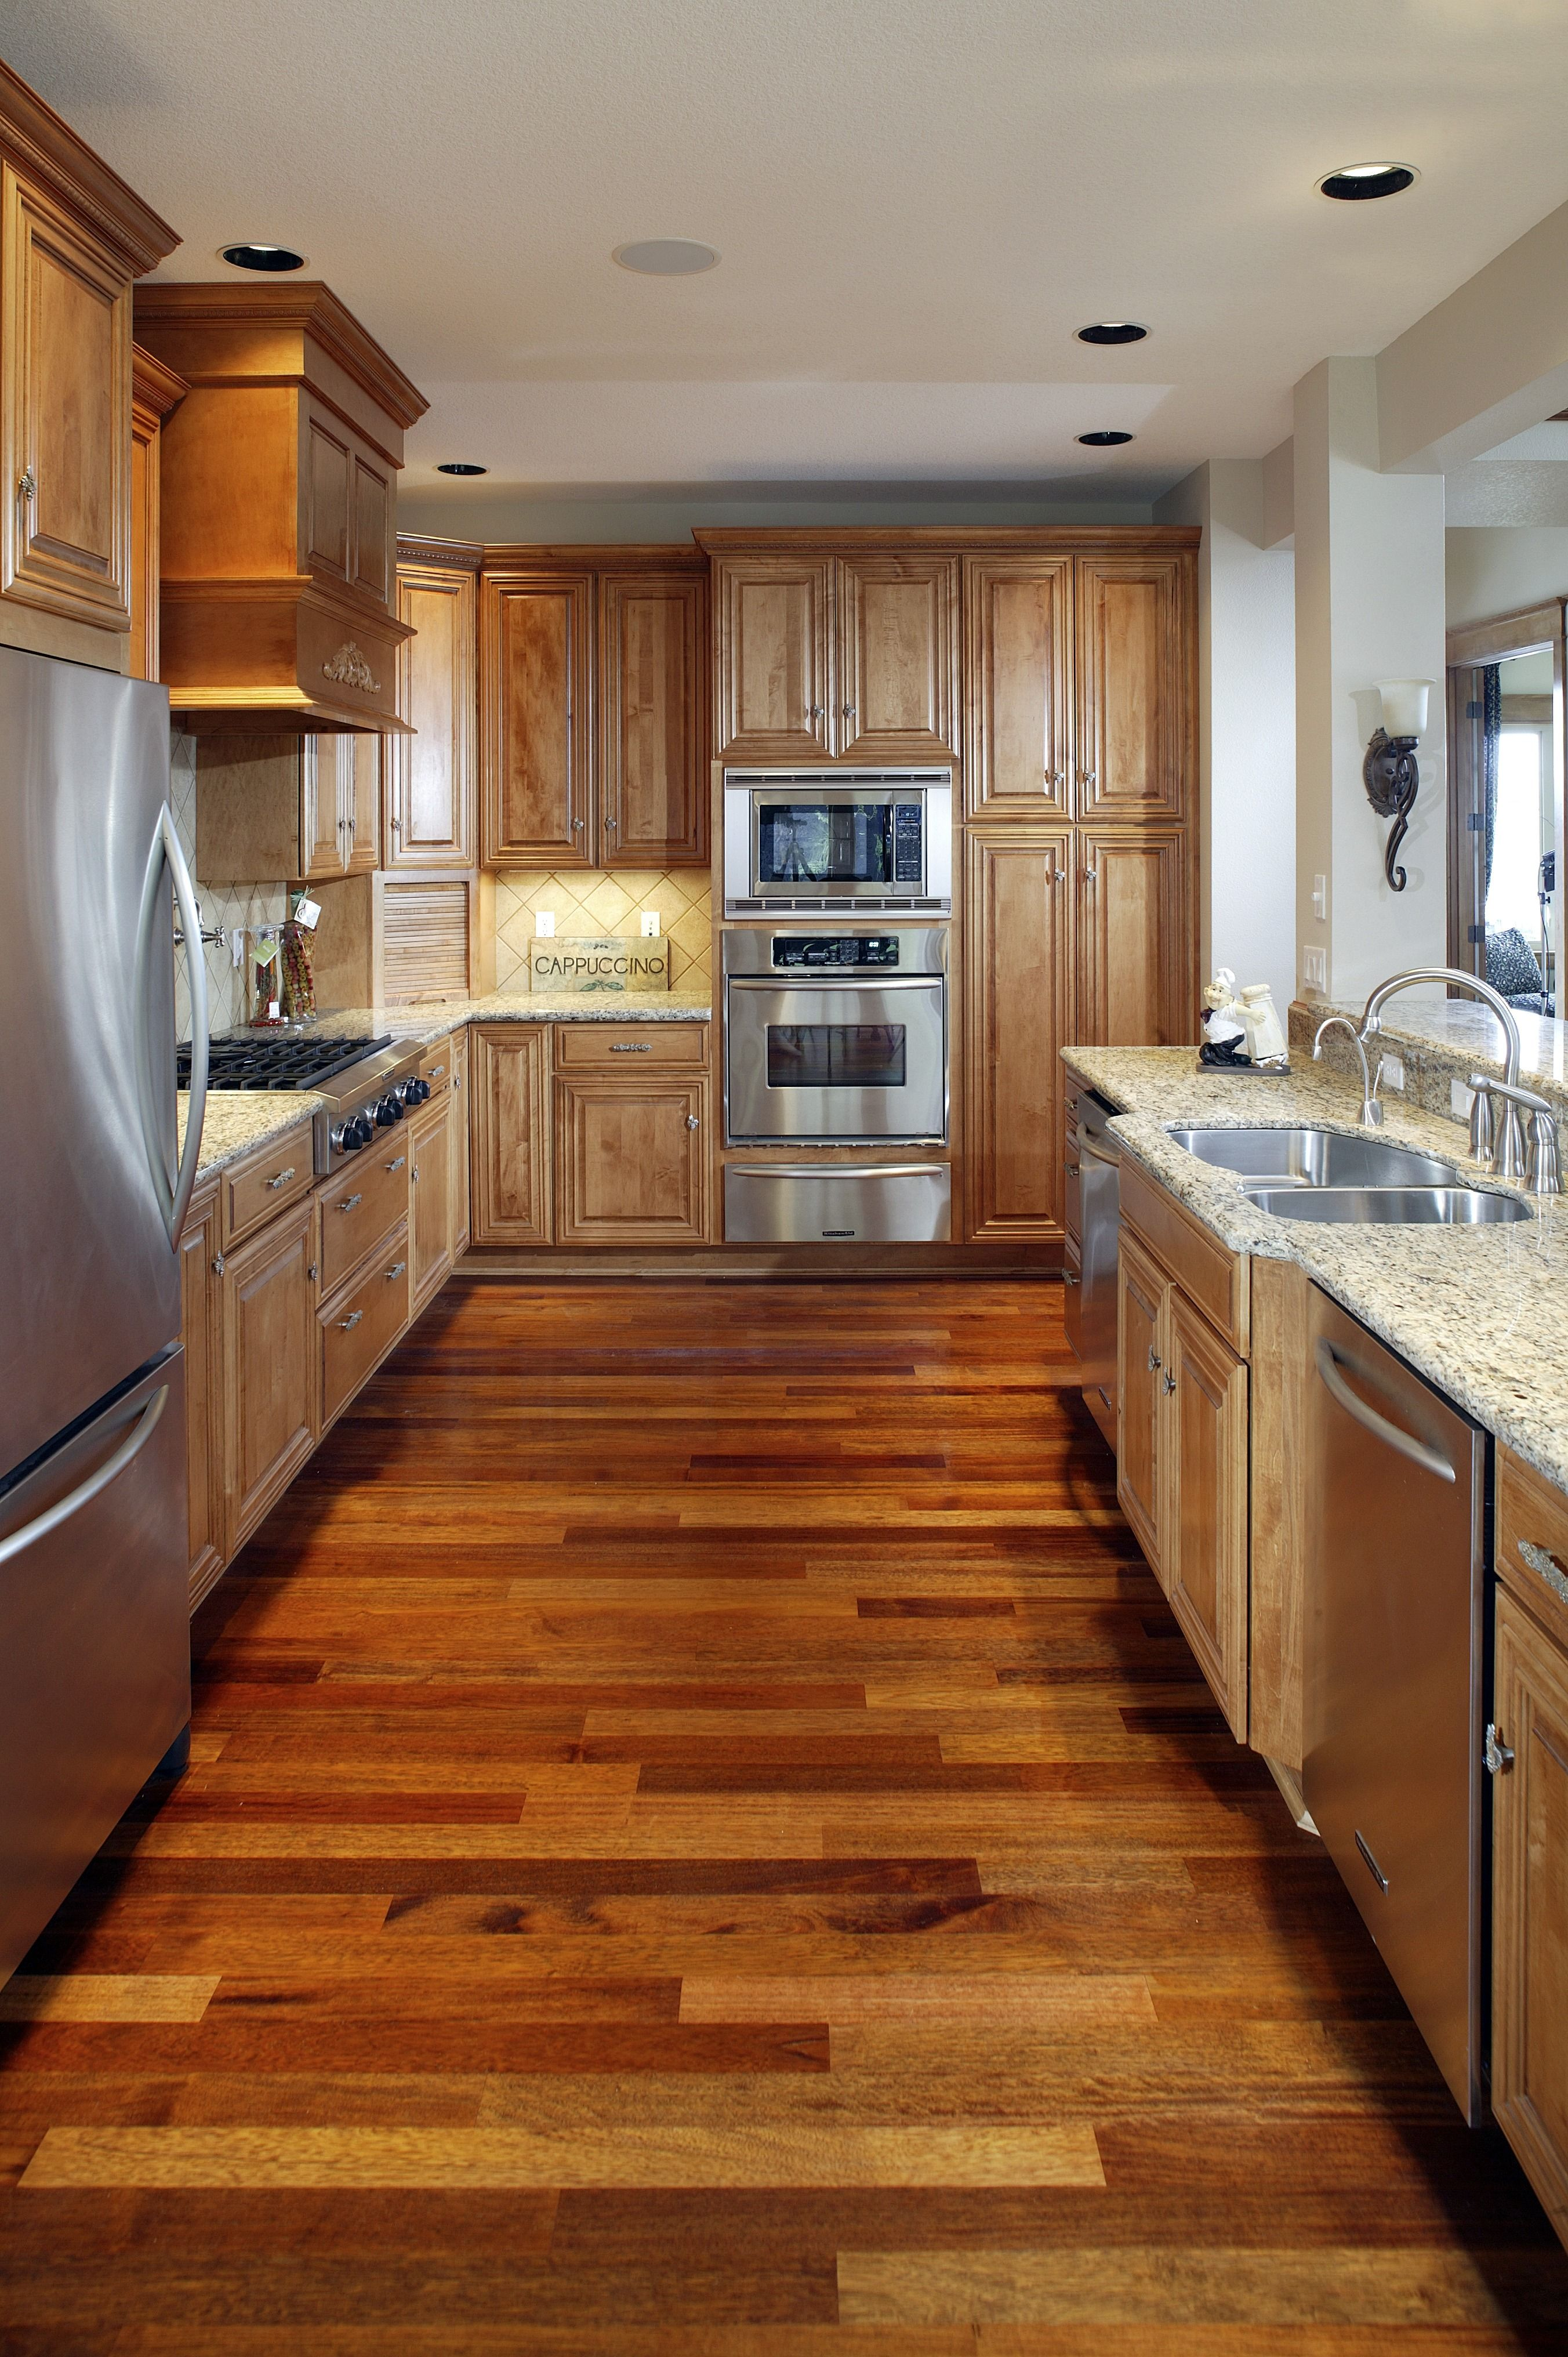 - These Wood Floors Are Stunning! This Kitchen Has Beautiful